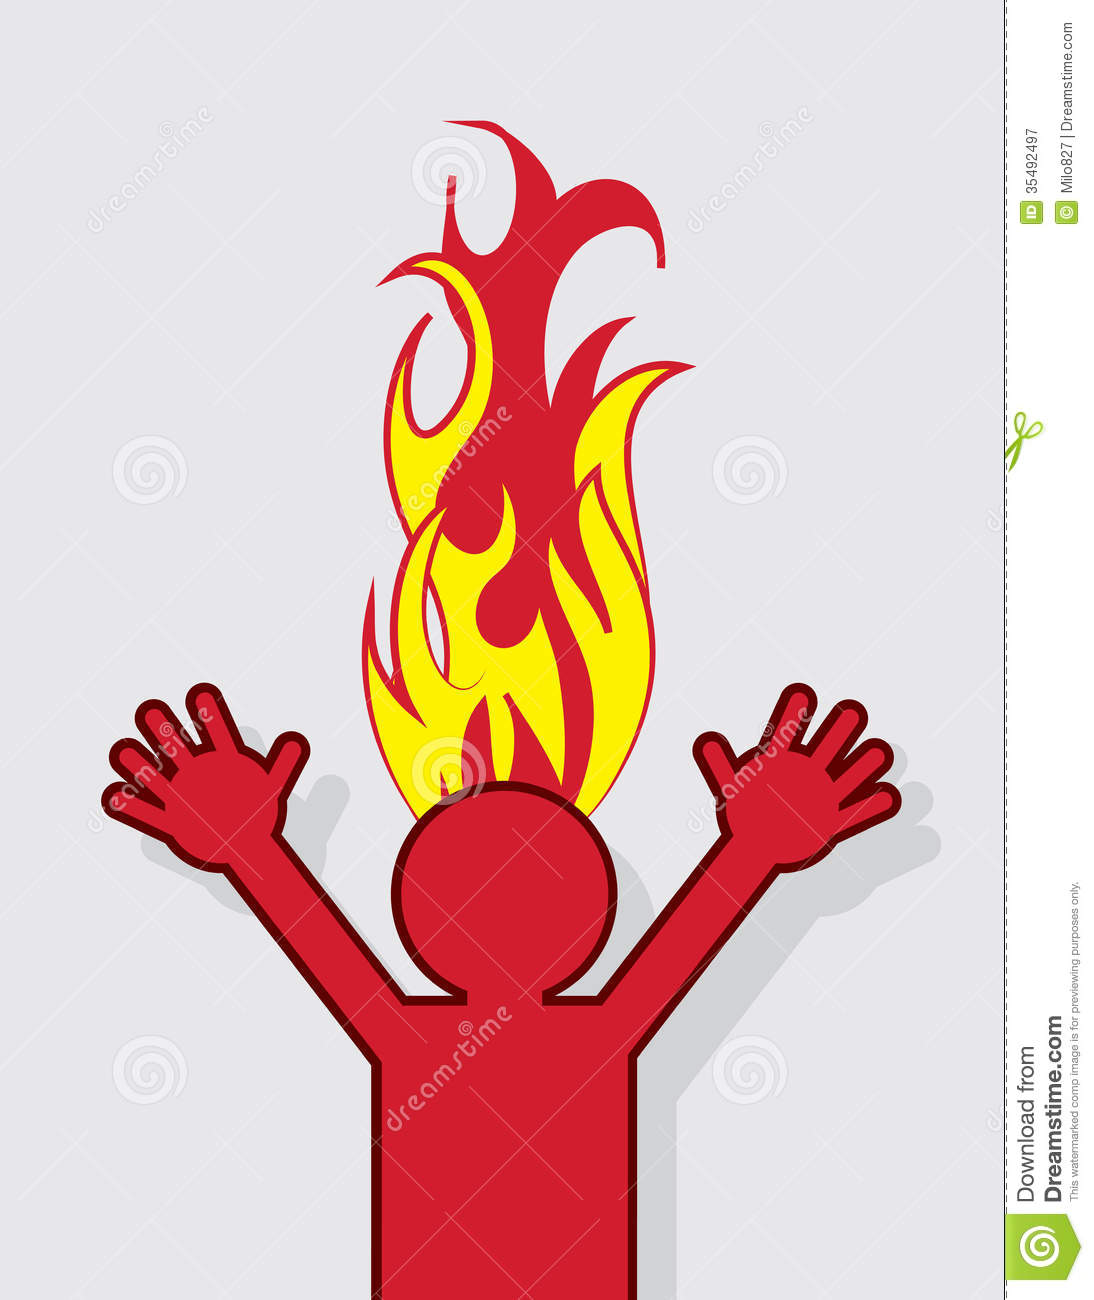 Figure Head On Fire Royalty Free Stock Photography - Image: 35492497